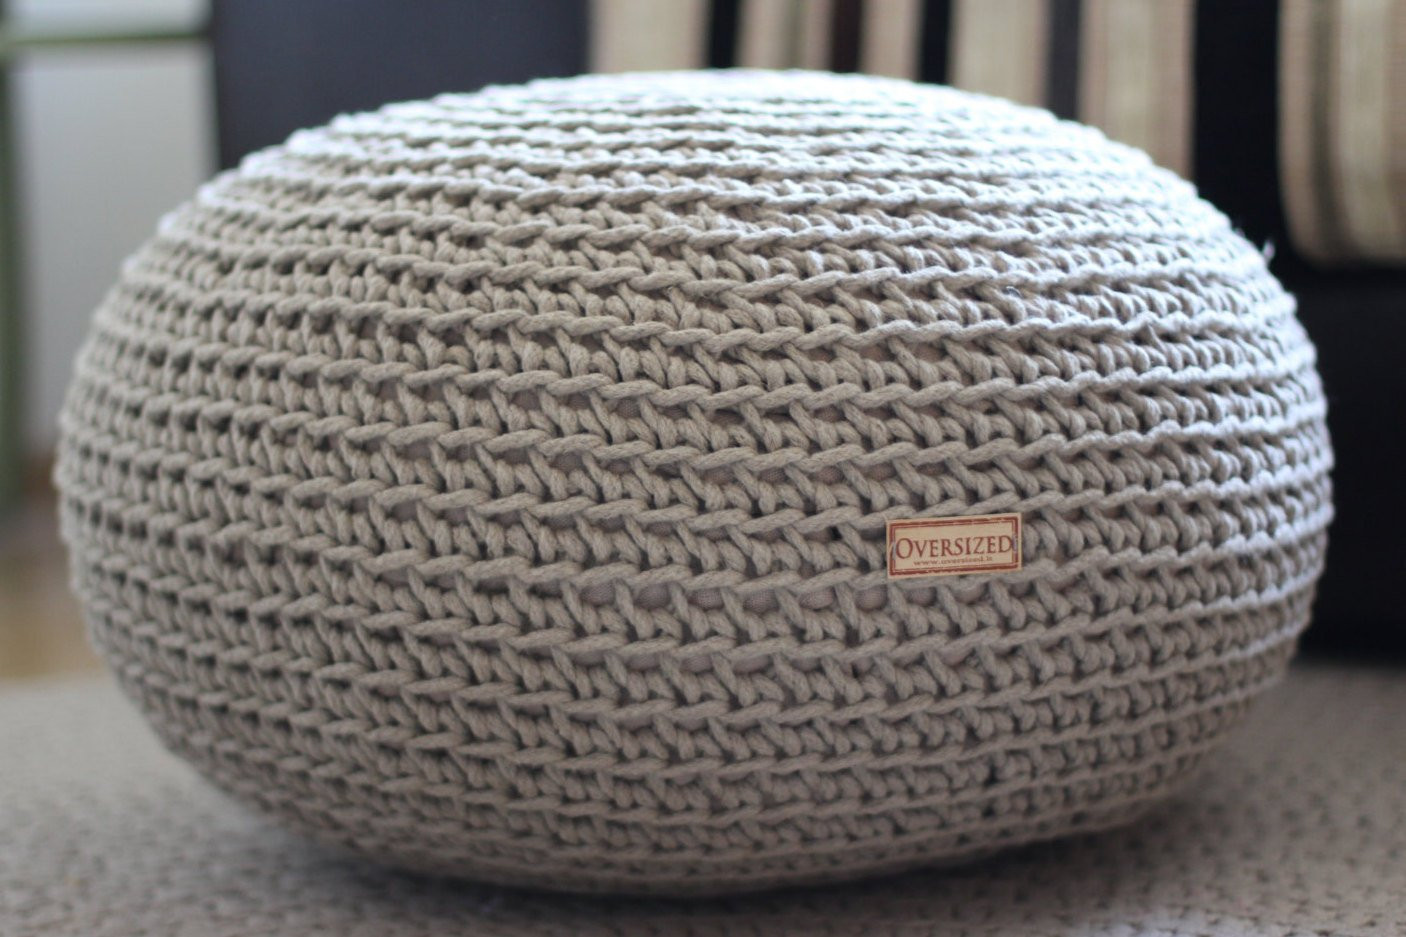 Crochet Ottoman New organic Crochet Pouf Linen Pouf Knit Pouf Floor Cushion Of Incredible 42 Ideas Crochet Ottoman